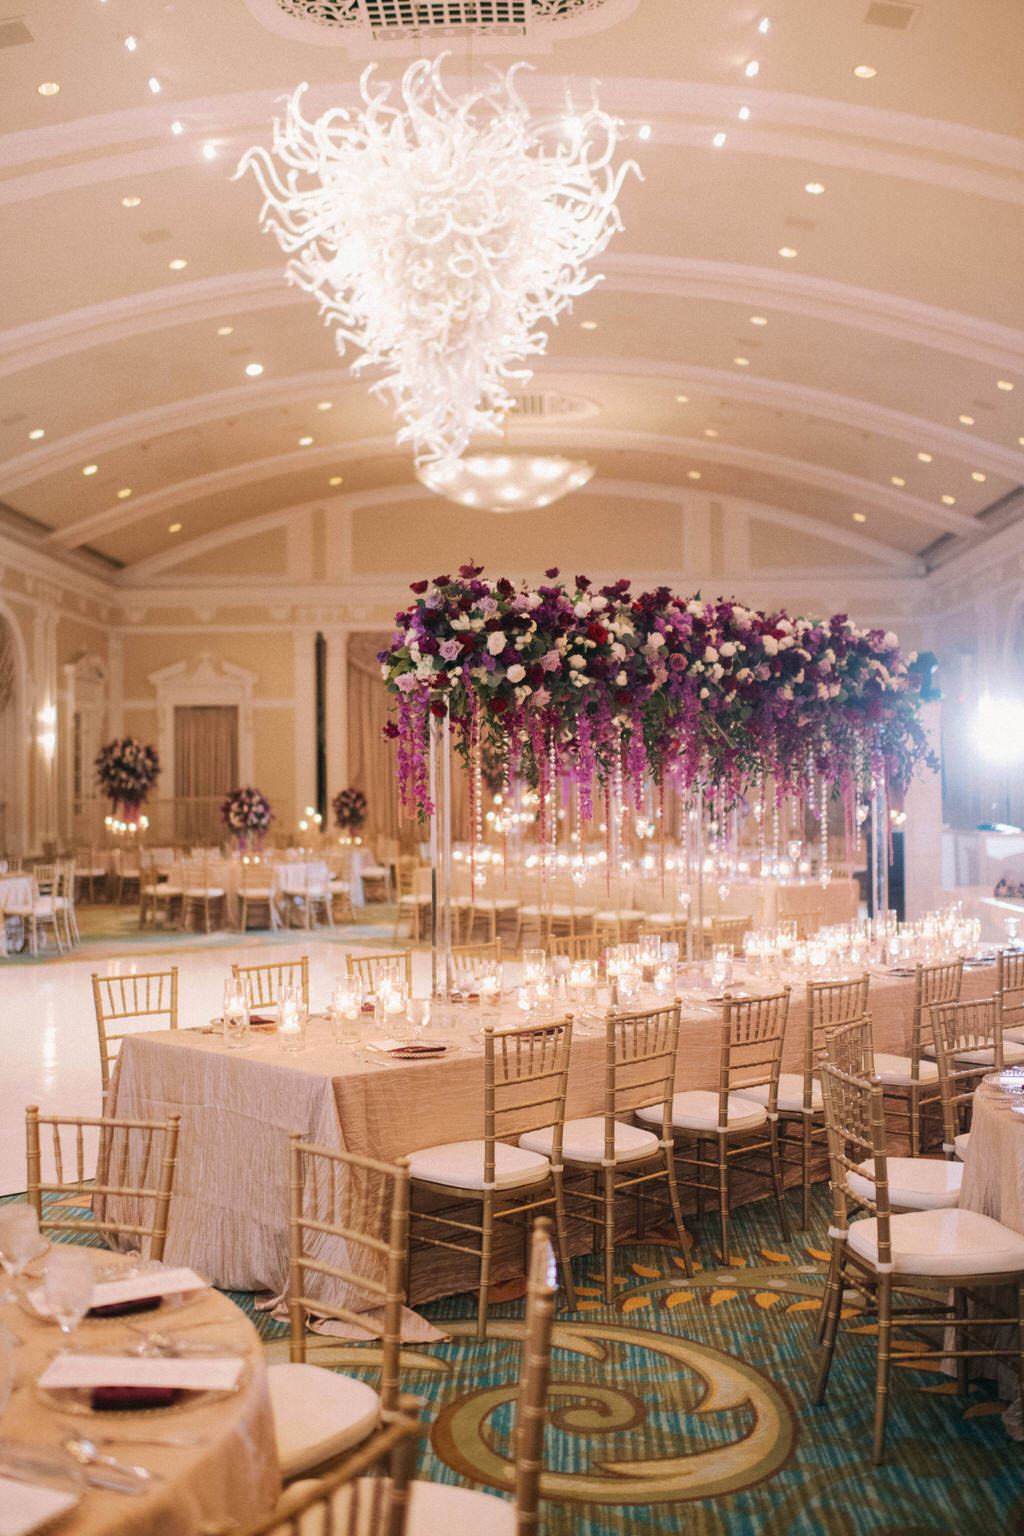 Elegant, Extravagant Wedding Reception Decor Portrait, Long Table with Gold Linen, Gold Chiavari Chairs, Tall Purple, Red, Plum, Lilac, Greenery and Purple Hanging Amaranthus Floral Centerpiece, Artistic Glass Chandelier | Downtown St. Pete Hotel Ballroom Wedding Venue The Vinoy Renaissance